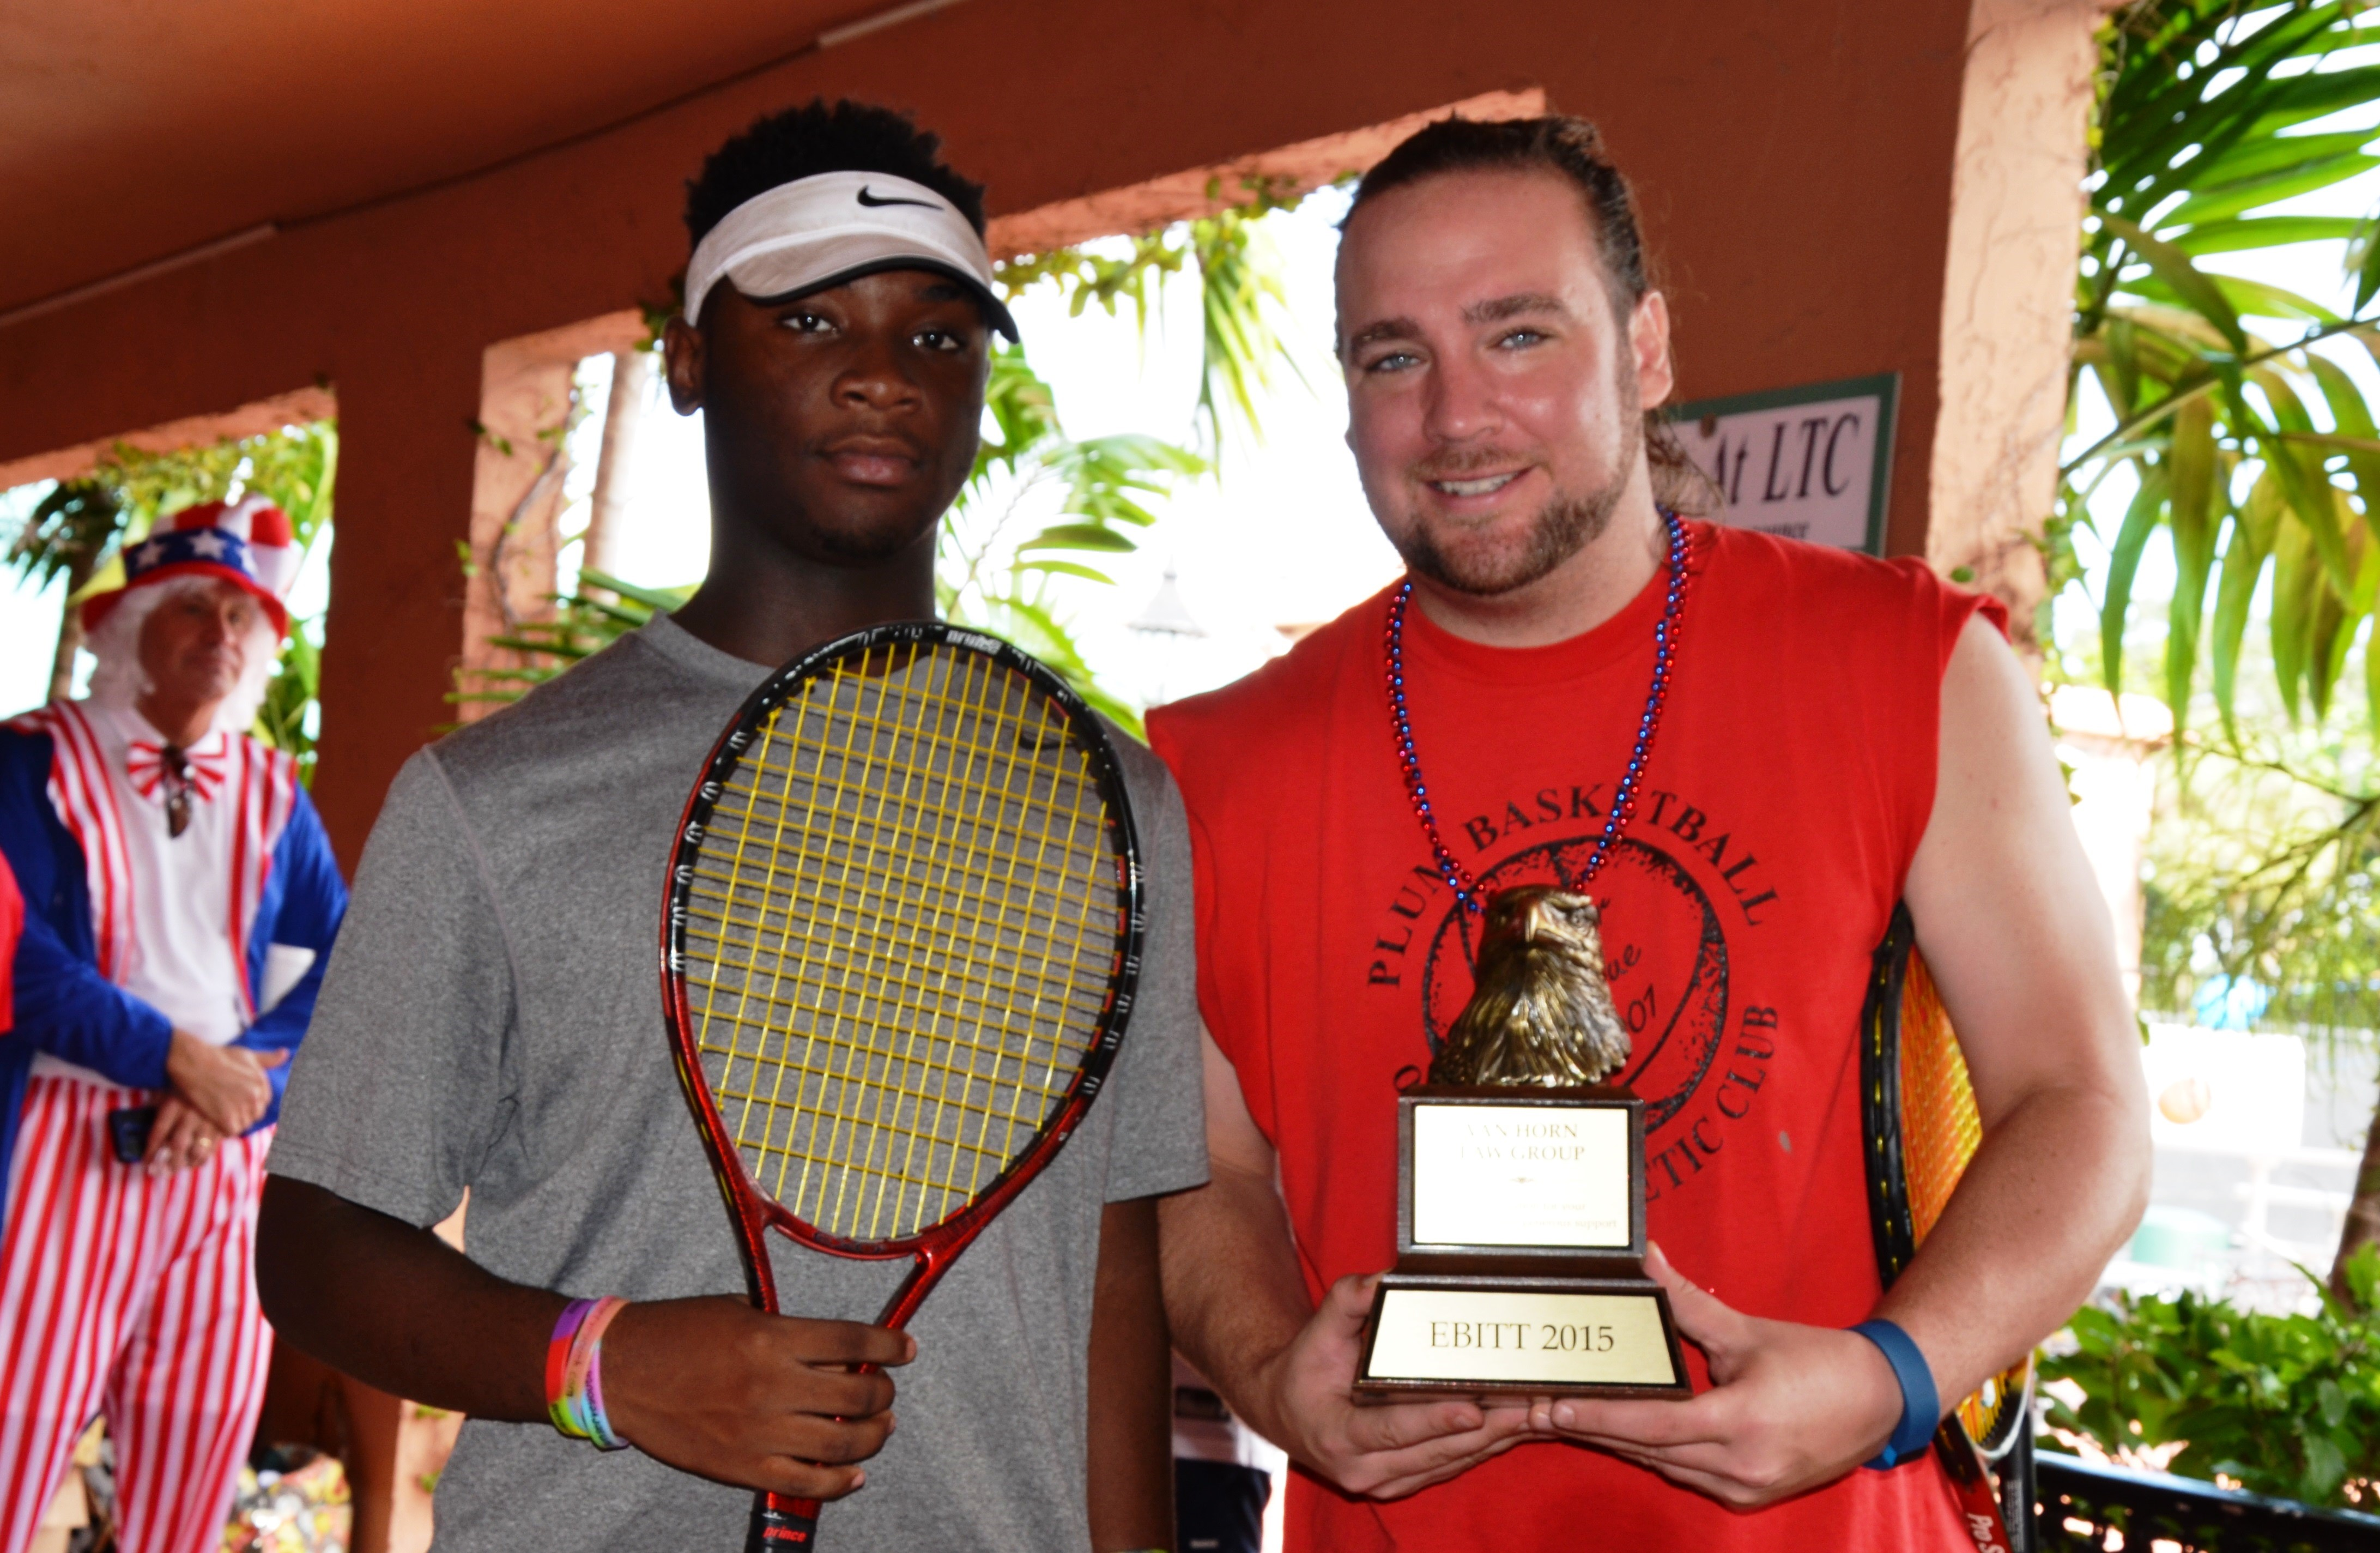 Chad Van Horn and Desmond at Tennis Event